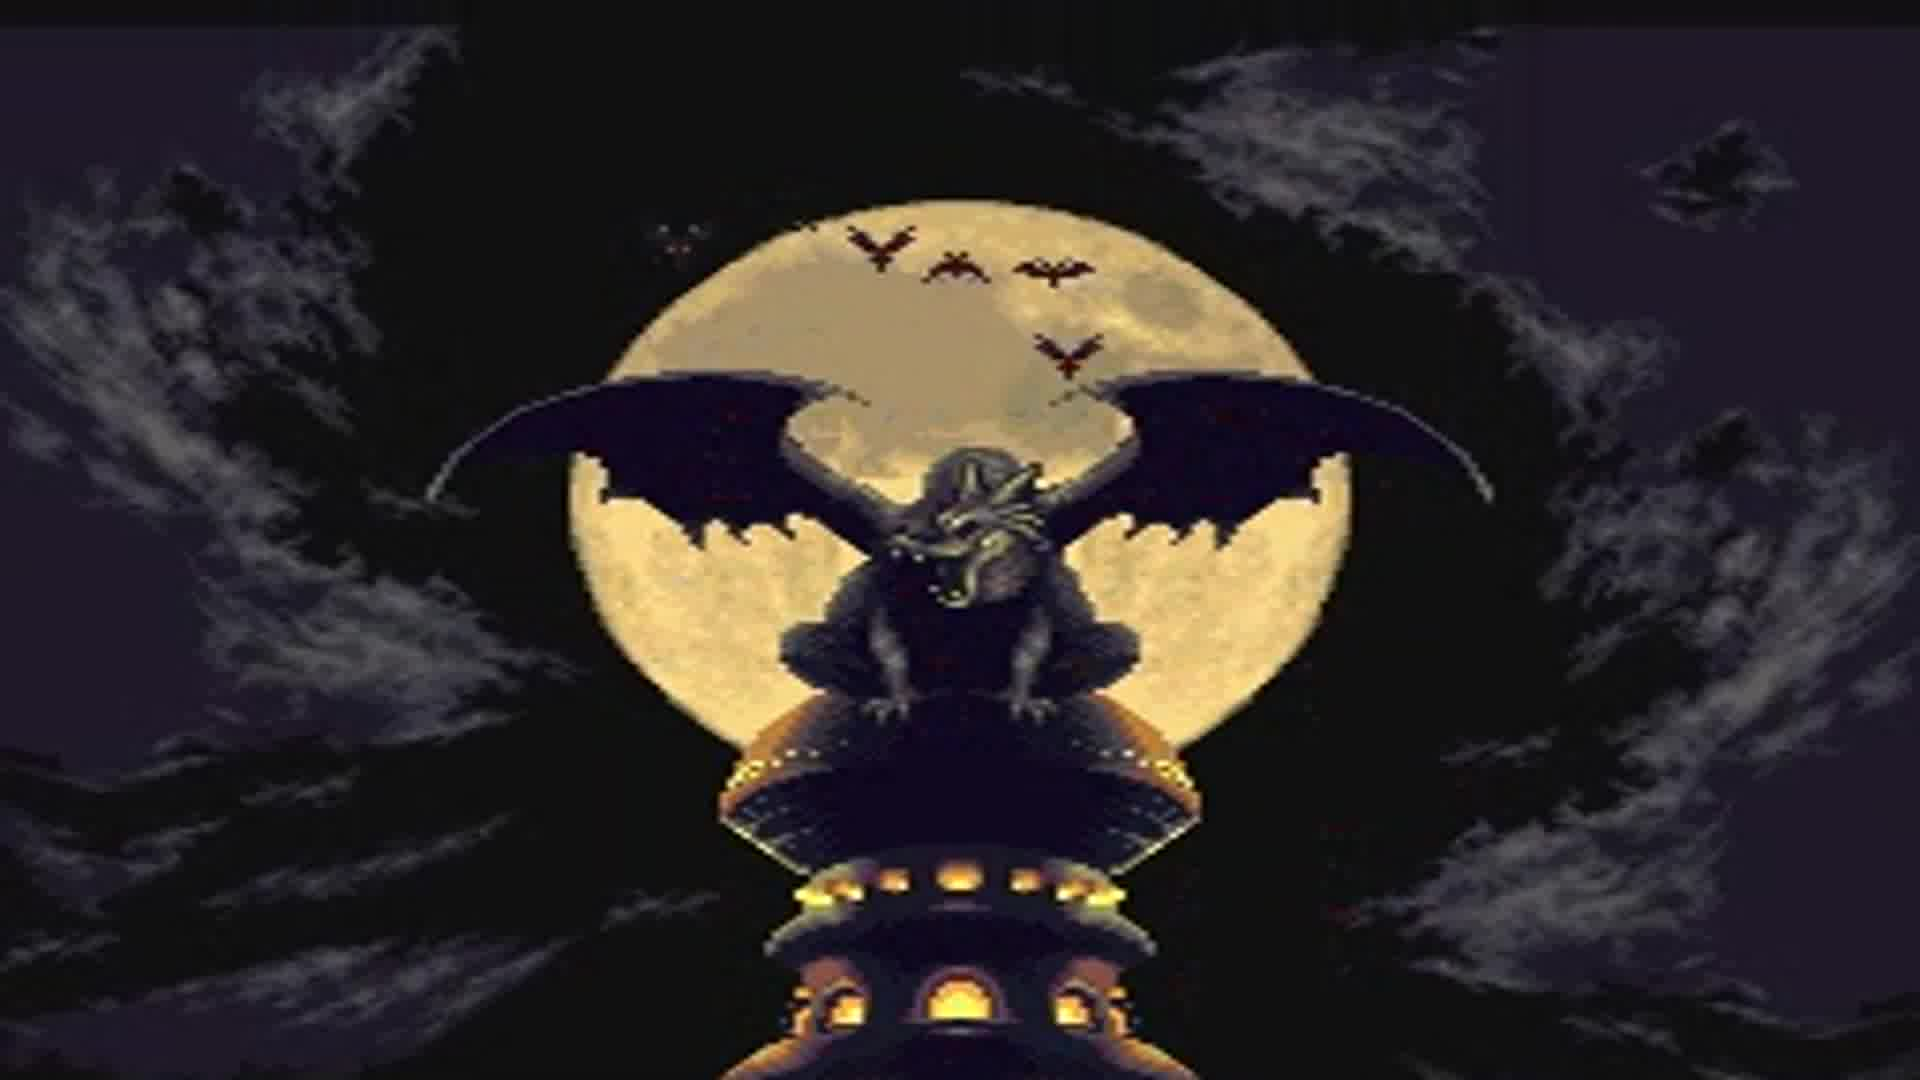 chrono trigger snes intro 05